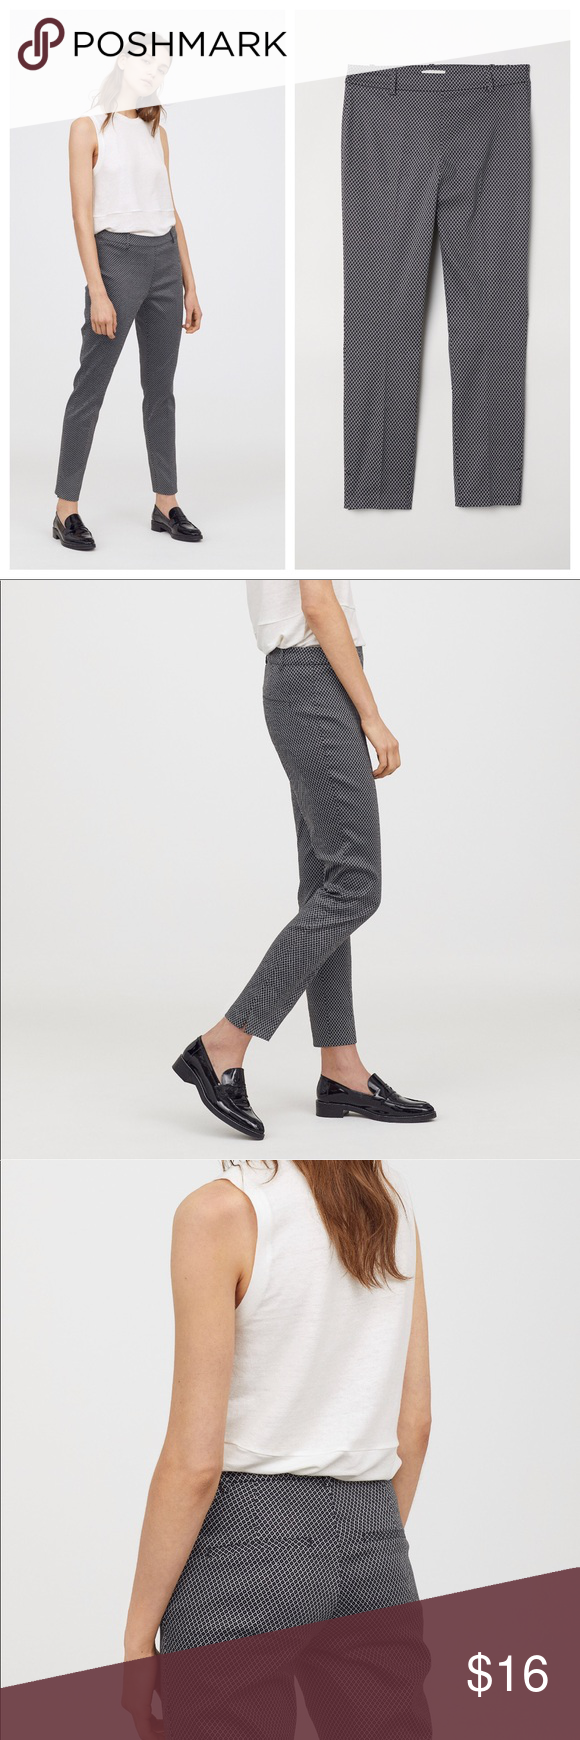 New women's black and white slacks. New H&M women's black and white slacks. Pants length is 37 inches long and inseam 28 inches and has a side zipper . A07 H&M Pants #whiteslacks New women's black and white slacks. New H&M women's black and white slacks. Pants length is 37 inches long and inseam 28 inches and has a side zipper . A07 H&M Pants #whiteslacks